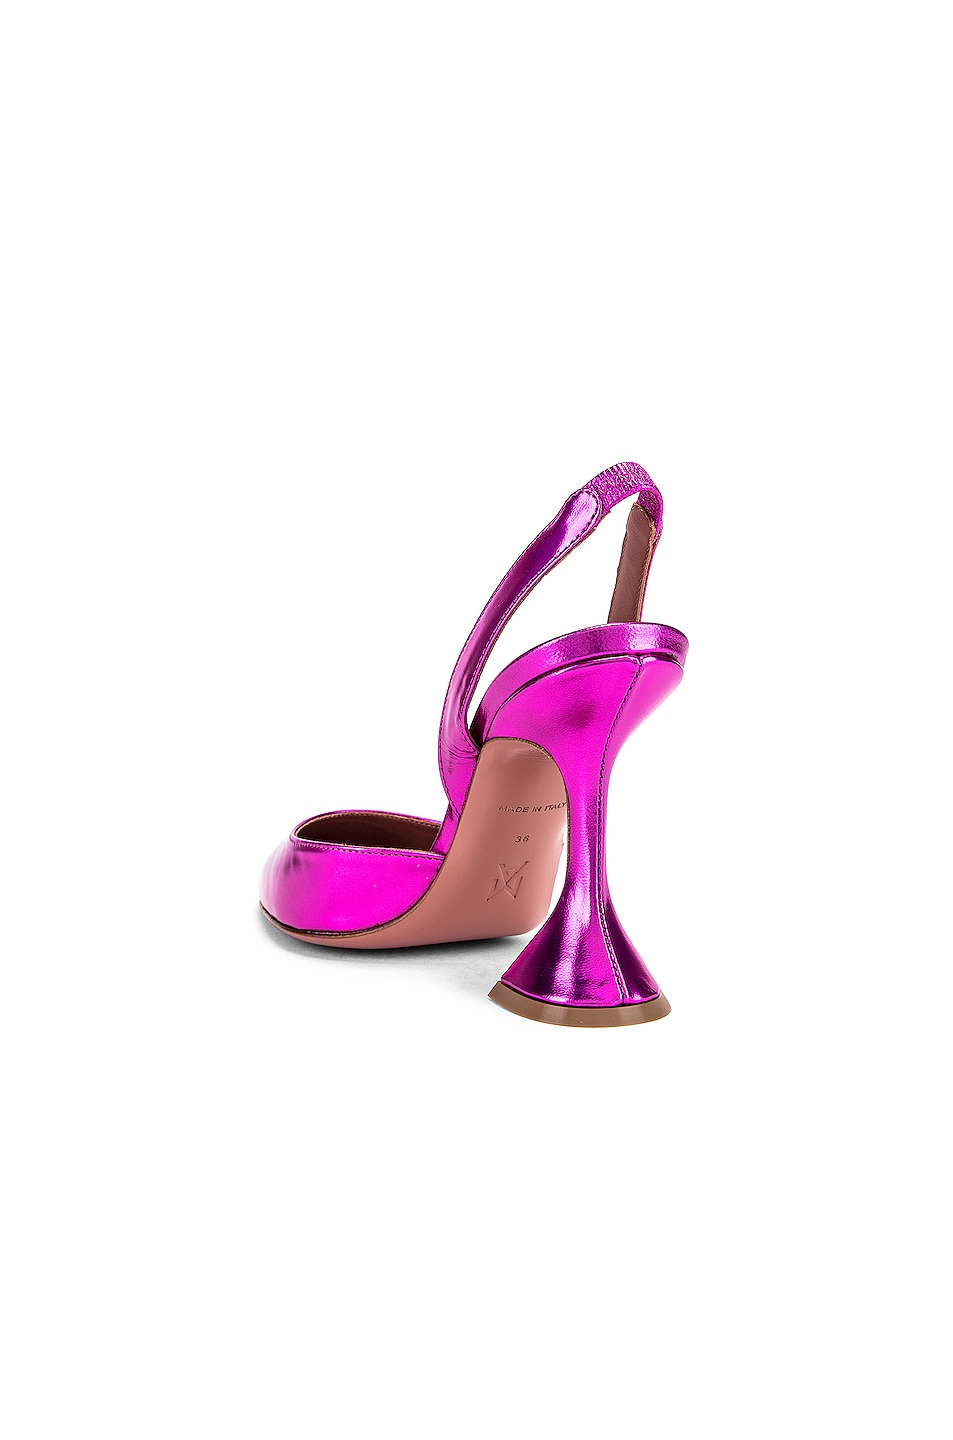 Image 3 of AMINA MUADDI Holli Slingback in Metal Fuchsia